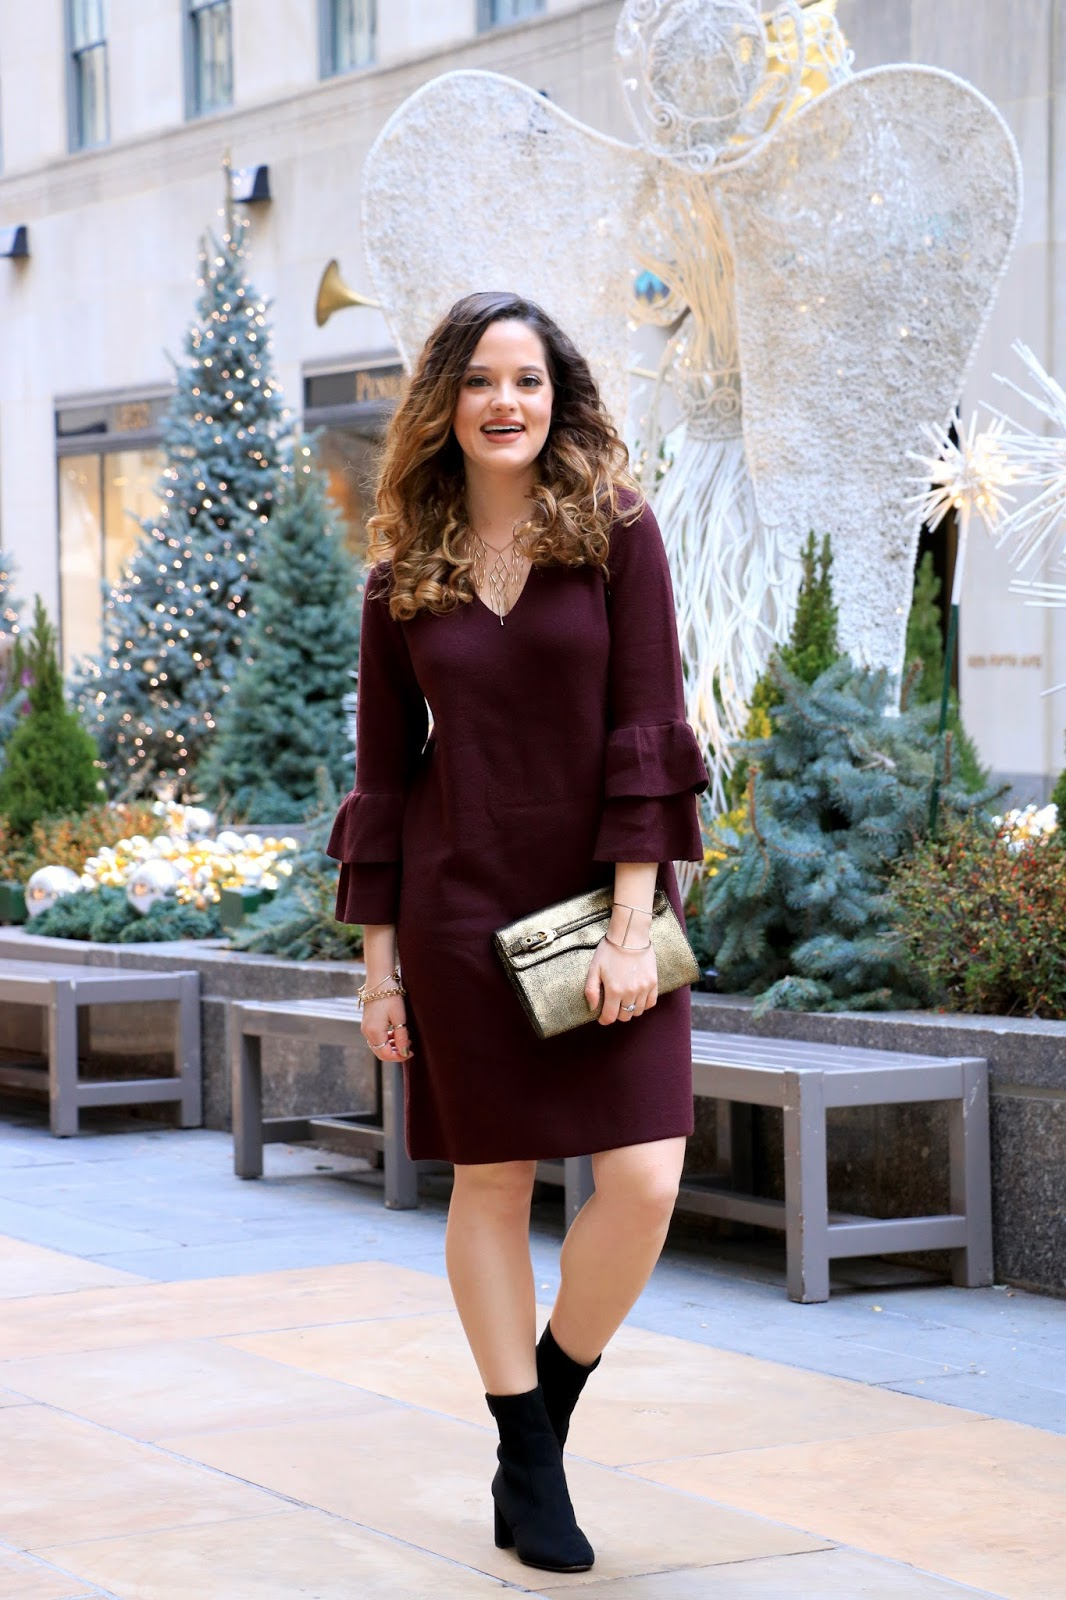 Nyc fashion blogger Kathleen Harper in holiday dress